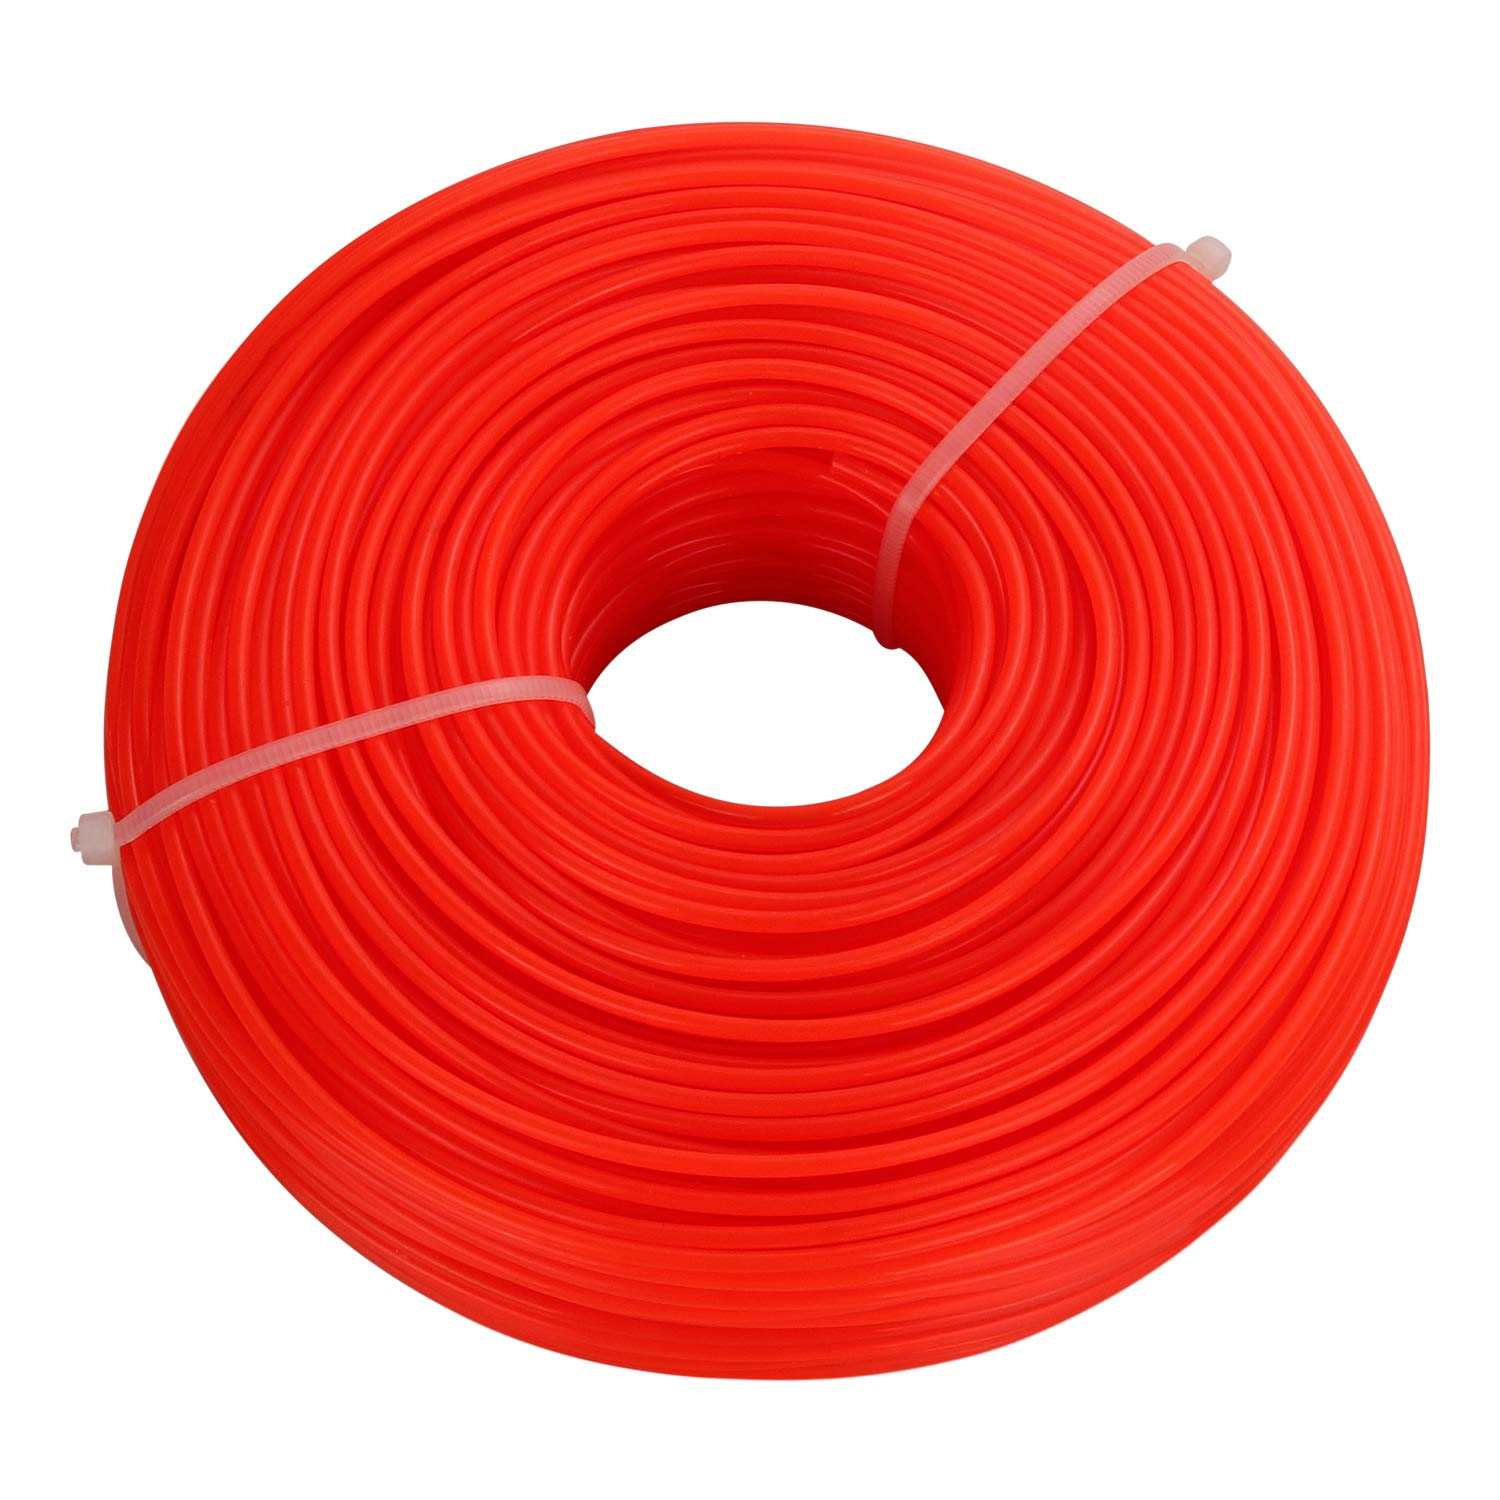 STARVAST Nylon Strimmer Trimmer Line 2.4mm x 100m Heavy Duty Brush Cutter Round Core Wire – Orange